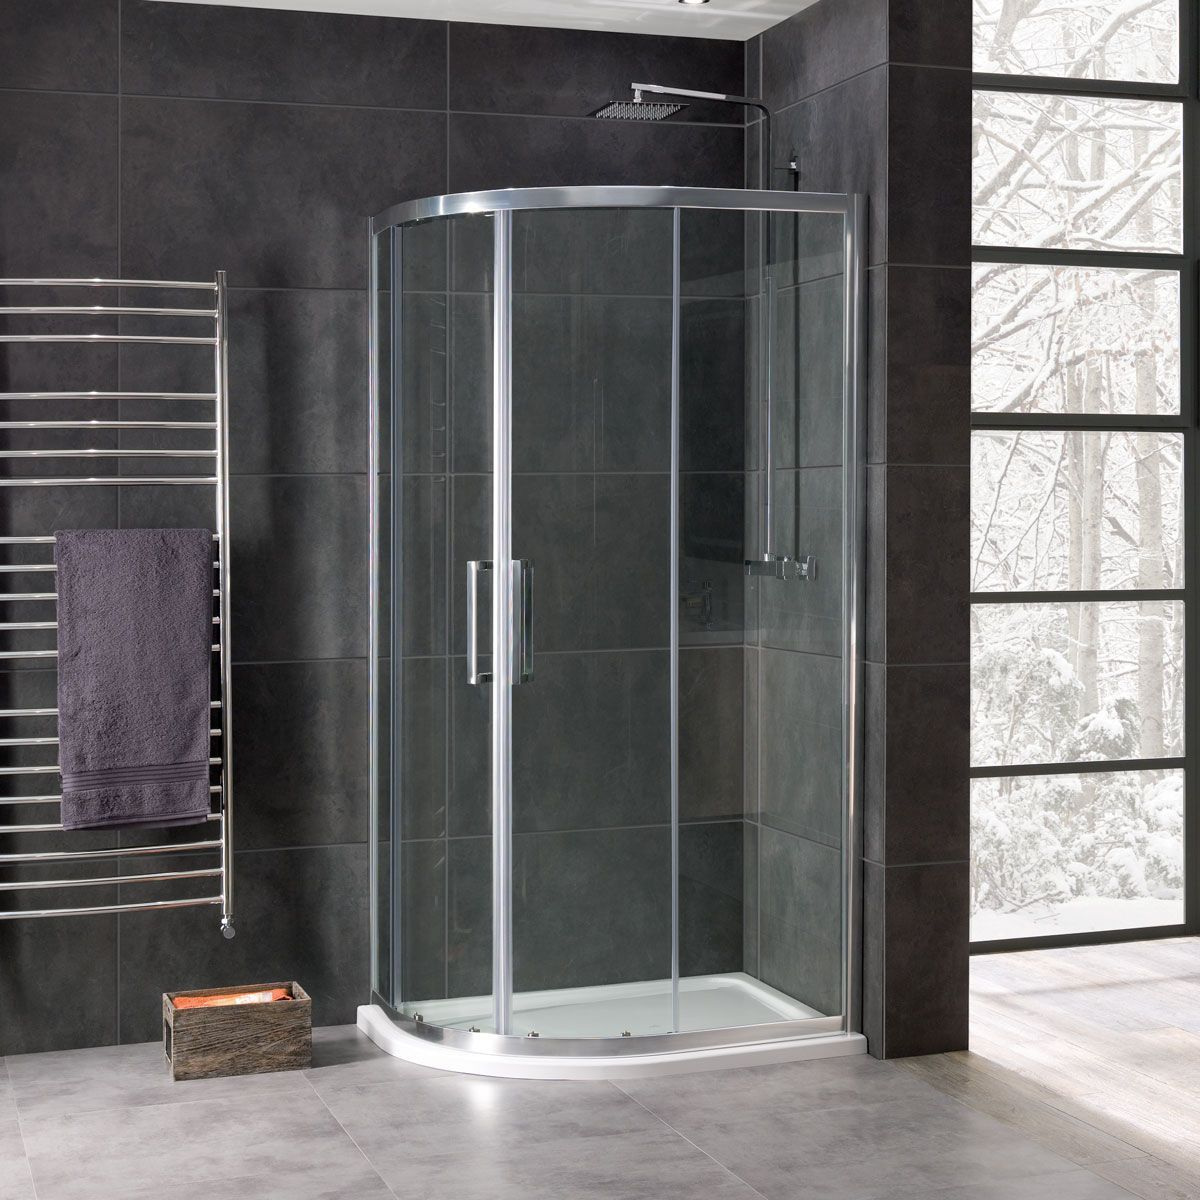 Coral 8mm Offset Quadrant Shower Enclosure 1200 x 900mm in